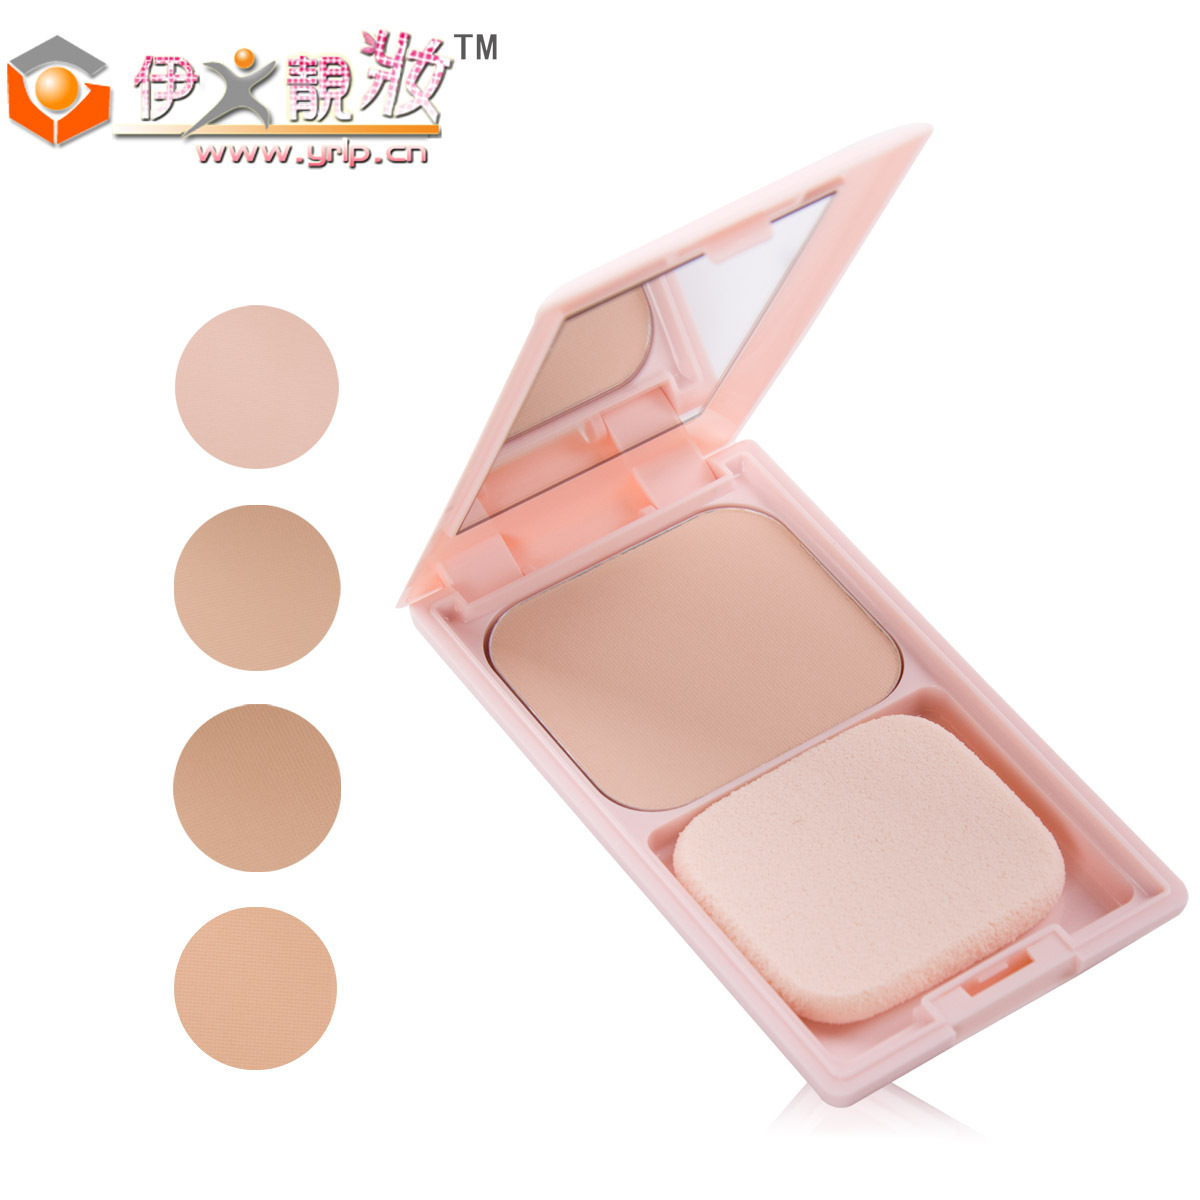 Hot-selling cezanne concealer sunscreen wet and dry powder spf35 dull 11g compact(China (Mainland))